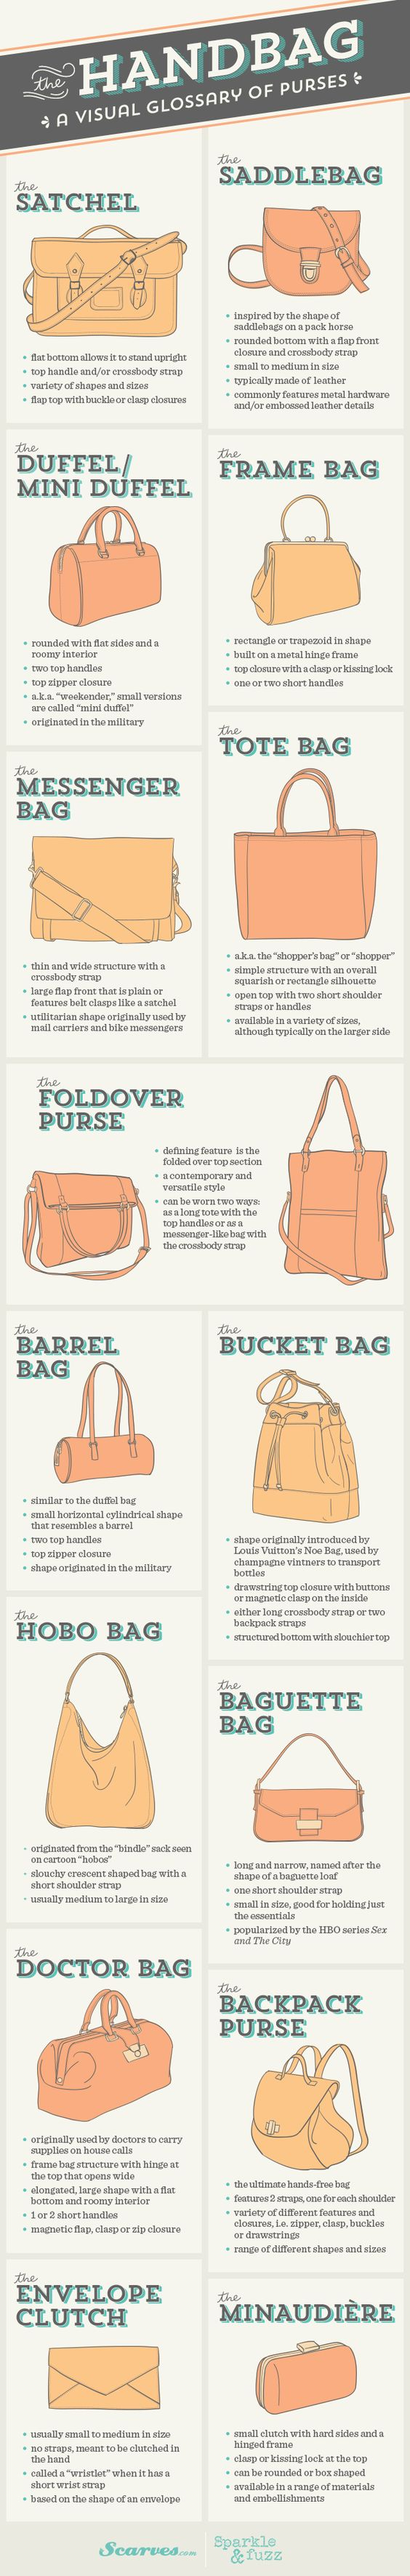 [Infographic] The Handbag: